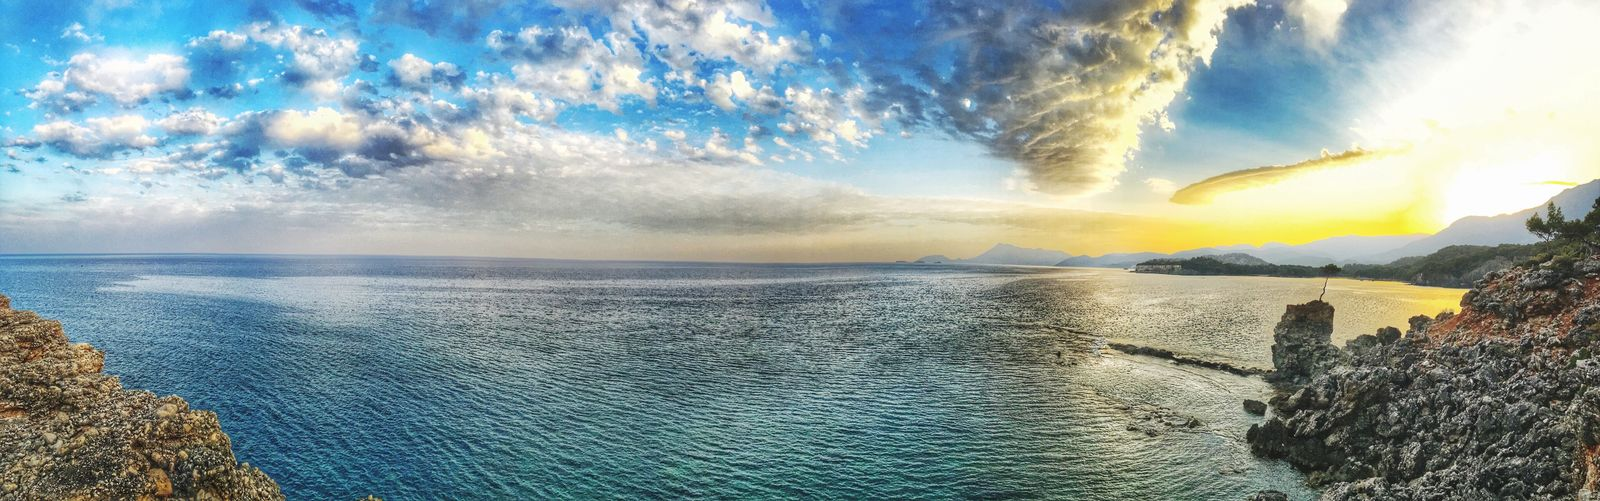 Beauty In Nature Scenics Water Nature Sky Cloud - Sky Sea Tranquil Scene Tranquility Idyllic Outdoors Mountain Tree Day Beach No People Horizon Over Water Phaselis